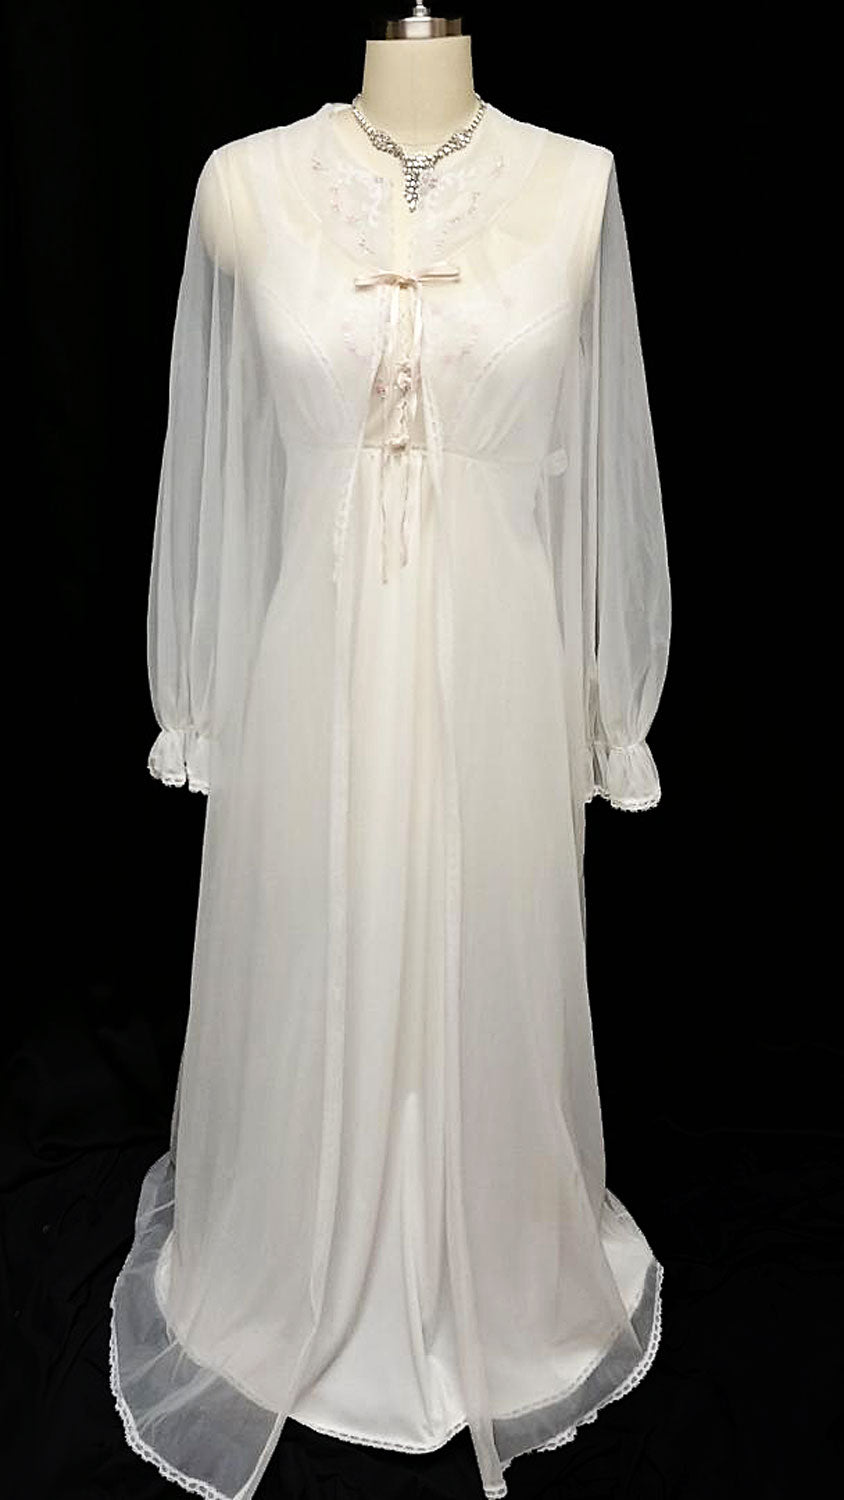 Vintage Vanity Fair Bridal Wedding Night Lace Embroidered Floral Pei Vintage Clothing Fashions Midnight Glamour